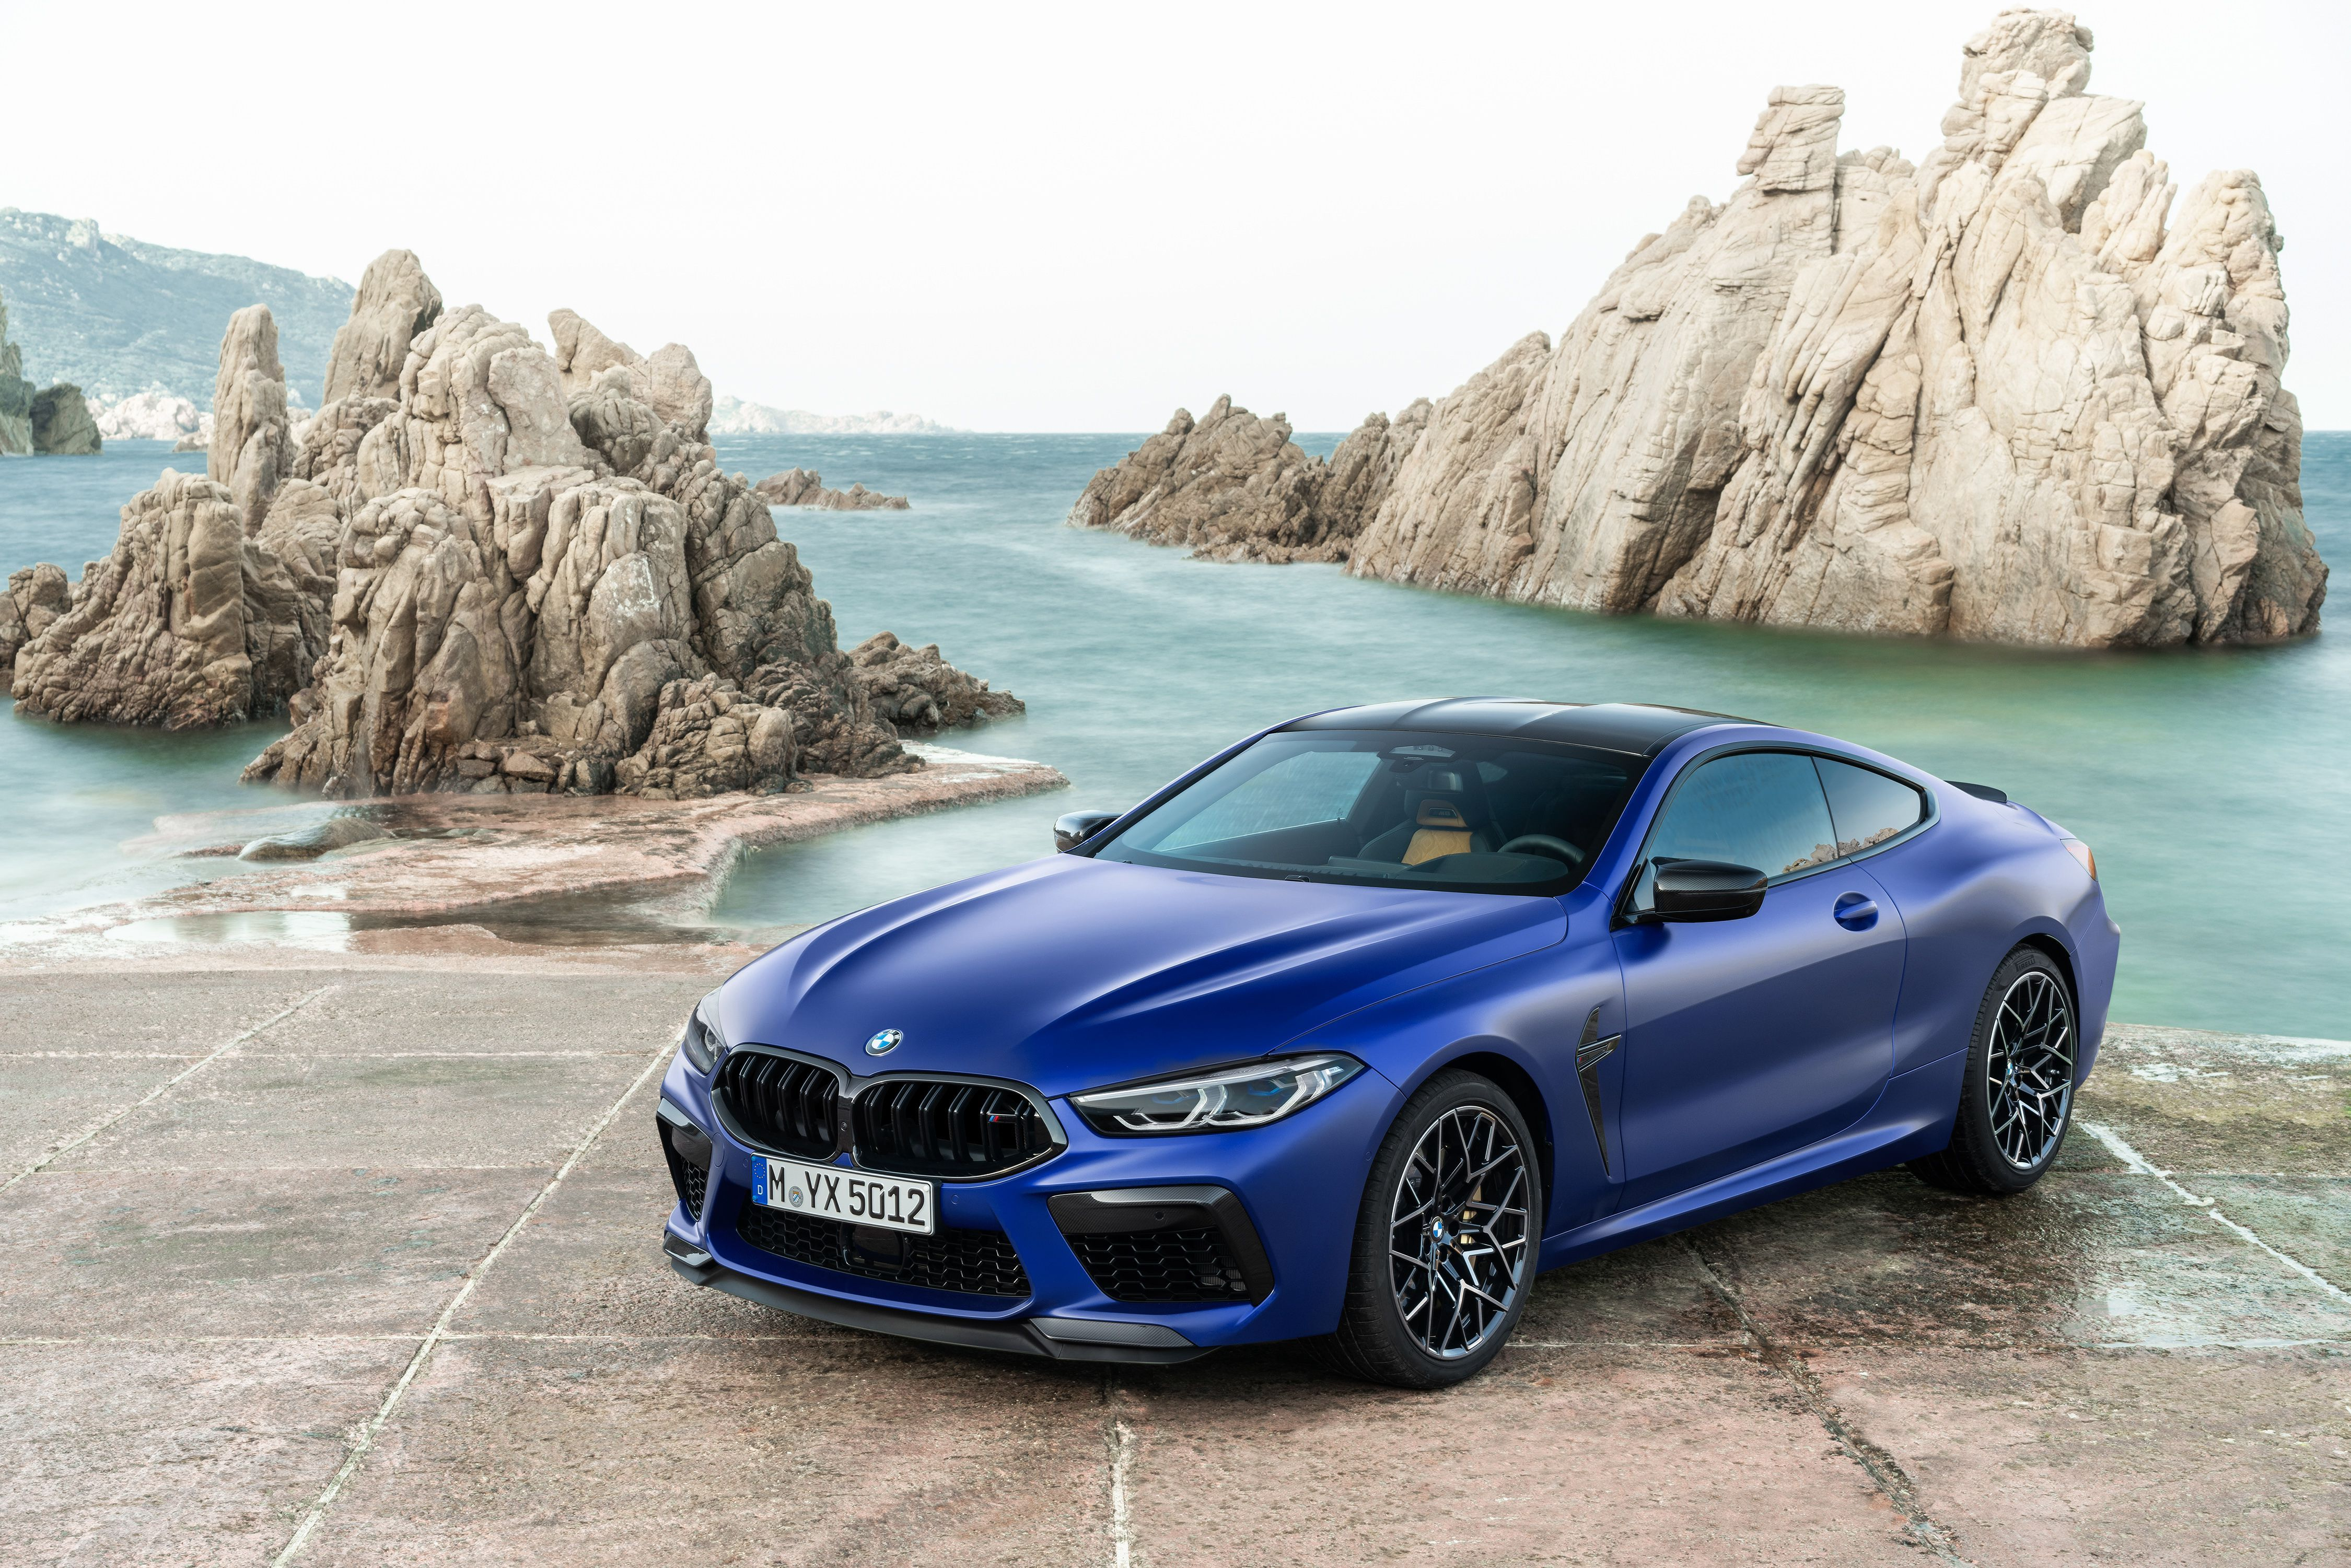 The 2020 Bmw M8 Is The 617 Hp High Performance 8 Series Weve Been